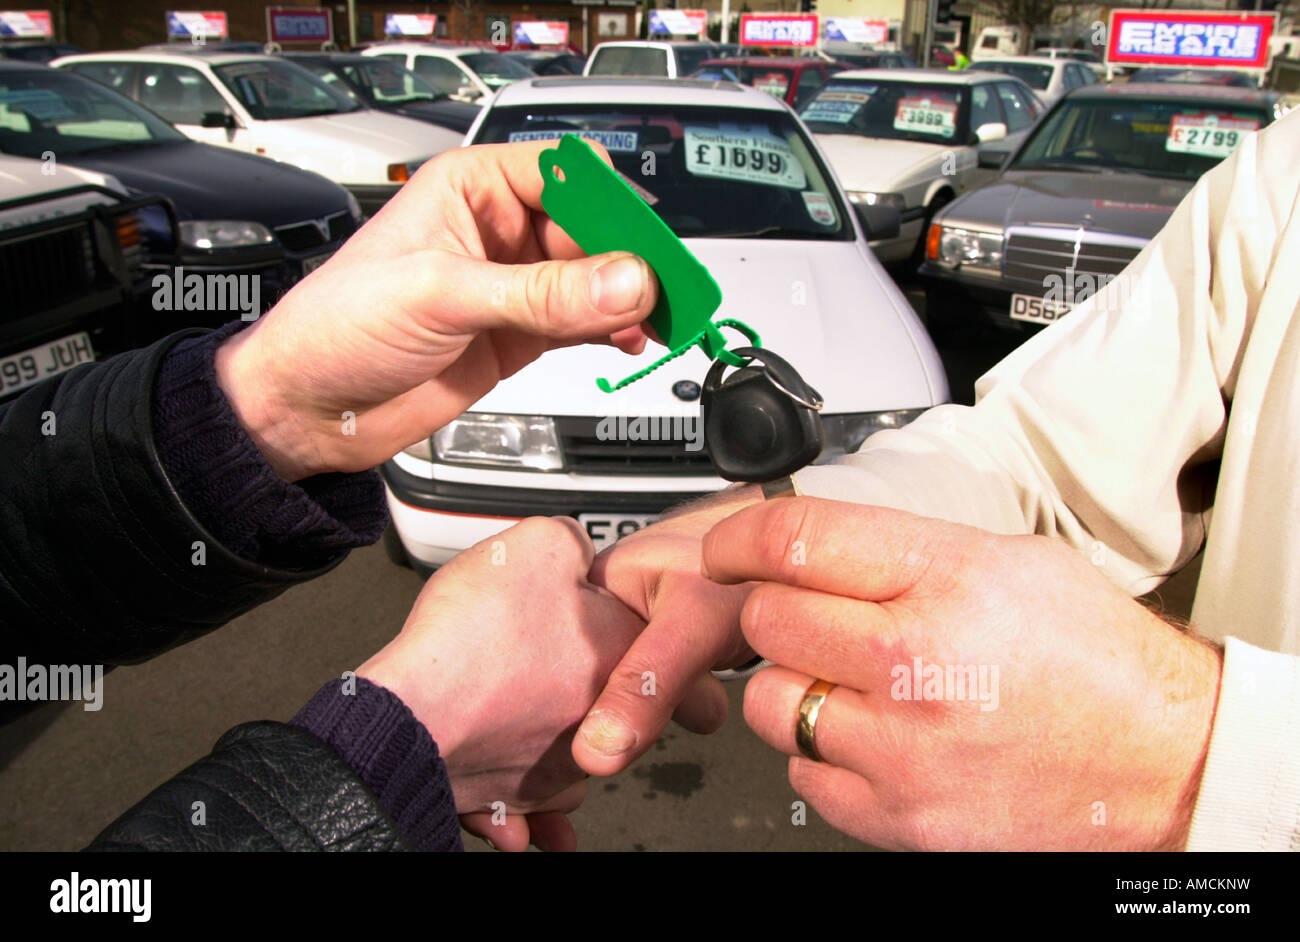 A DEAL IS SEALED WITH A HANDSHAKE AT A USED CAR DEALERSHIP UK - Stock Image